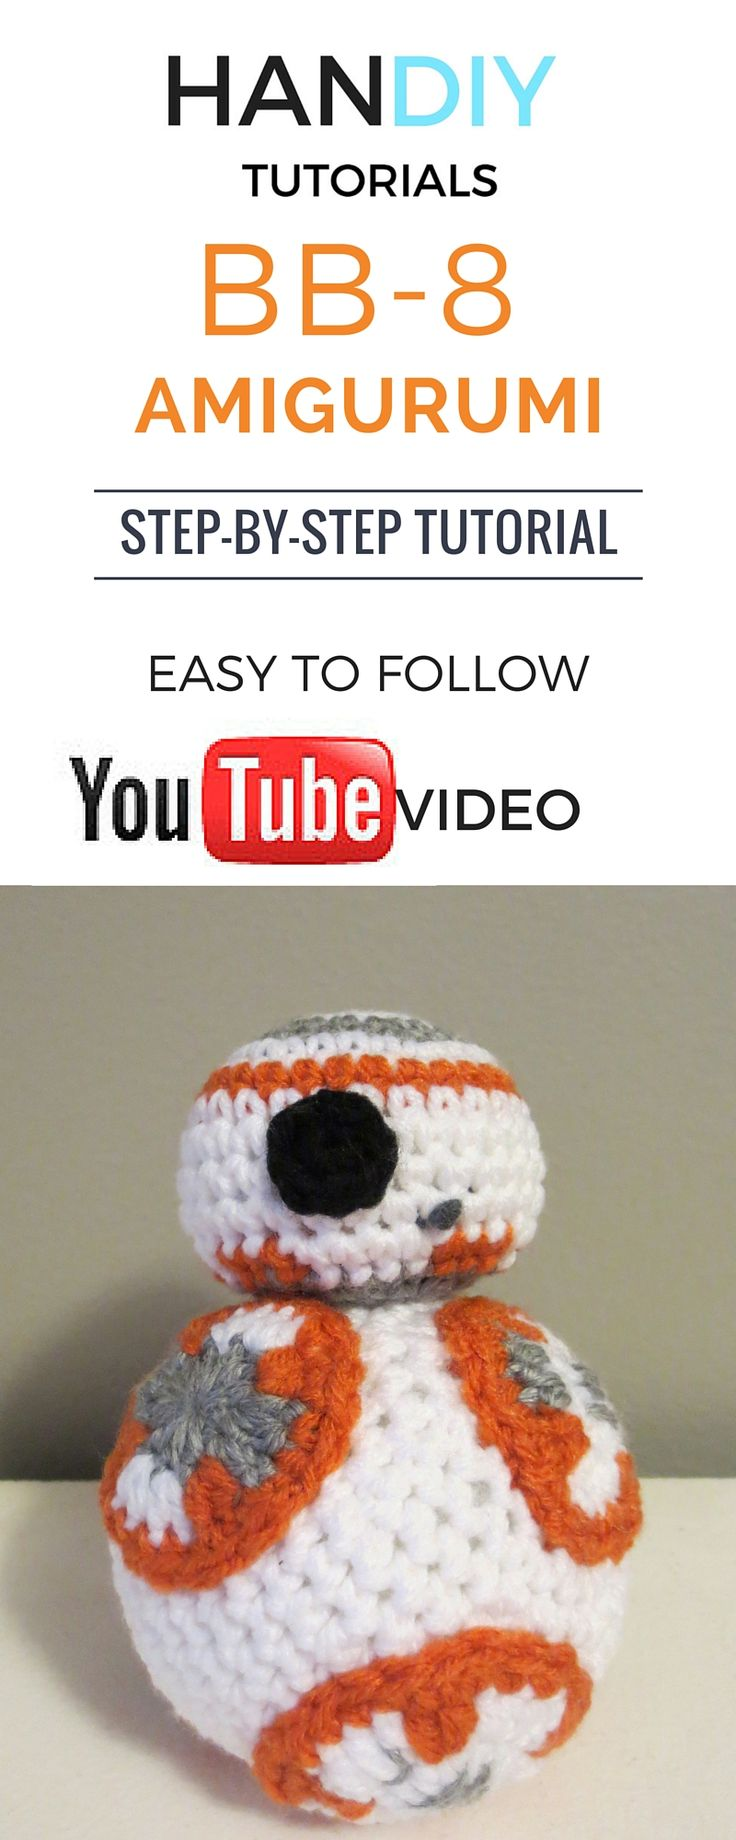 BB-8 Amigurumi free and easy step by step tutorial! Easy to follow. Great for beginners. YouTube video. Star wars crafts. BB-8 toy by HanDIY Tutorials.